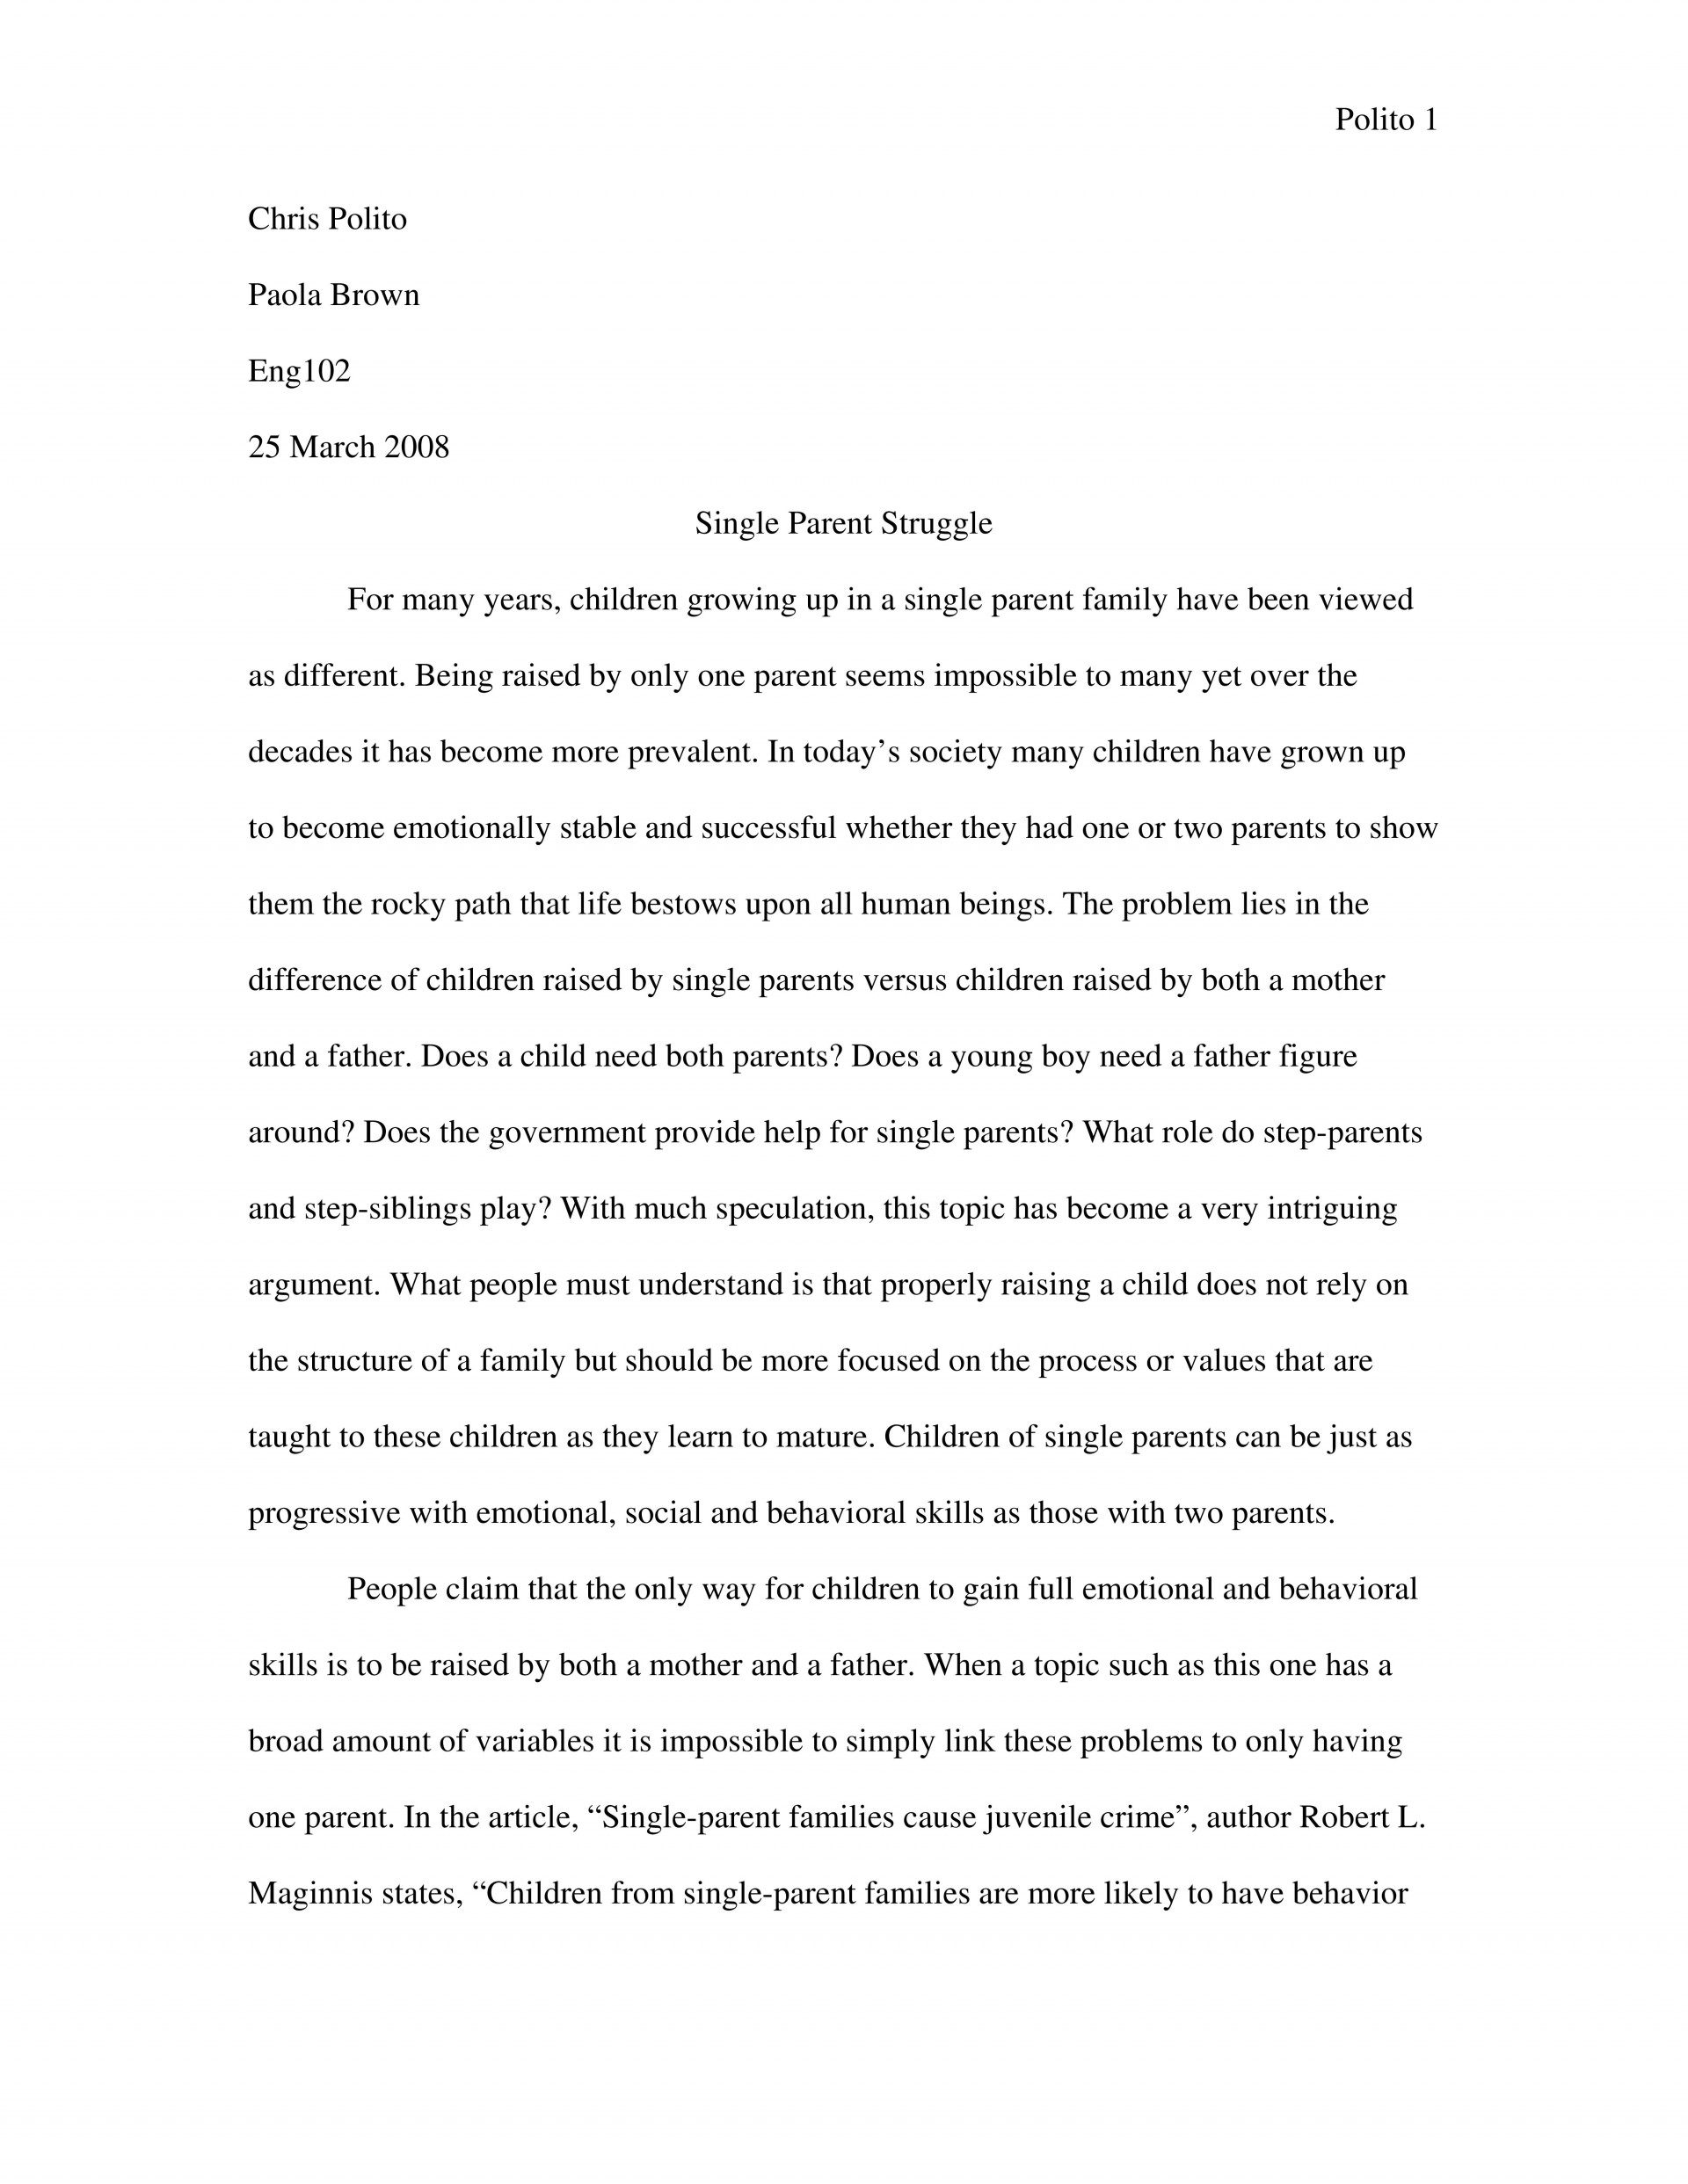 002 Essay Example Expository Sample 2 Examples Of Fantastic Essays For Middle School High 1920